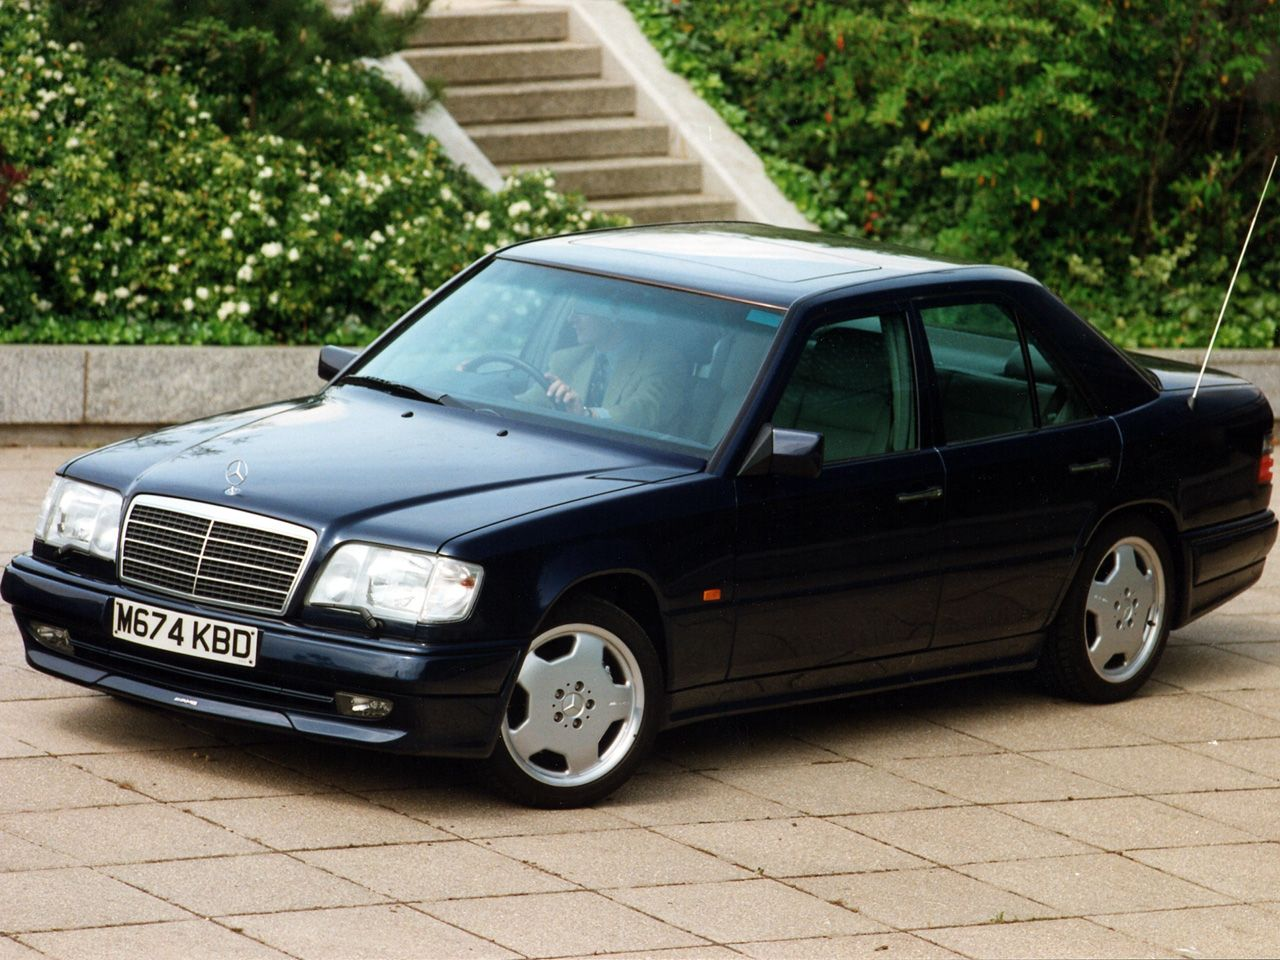 Mercedes Benz E36 Amg W124 With Images Mercedes Benz Cars